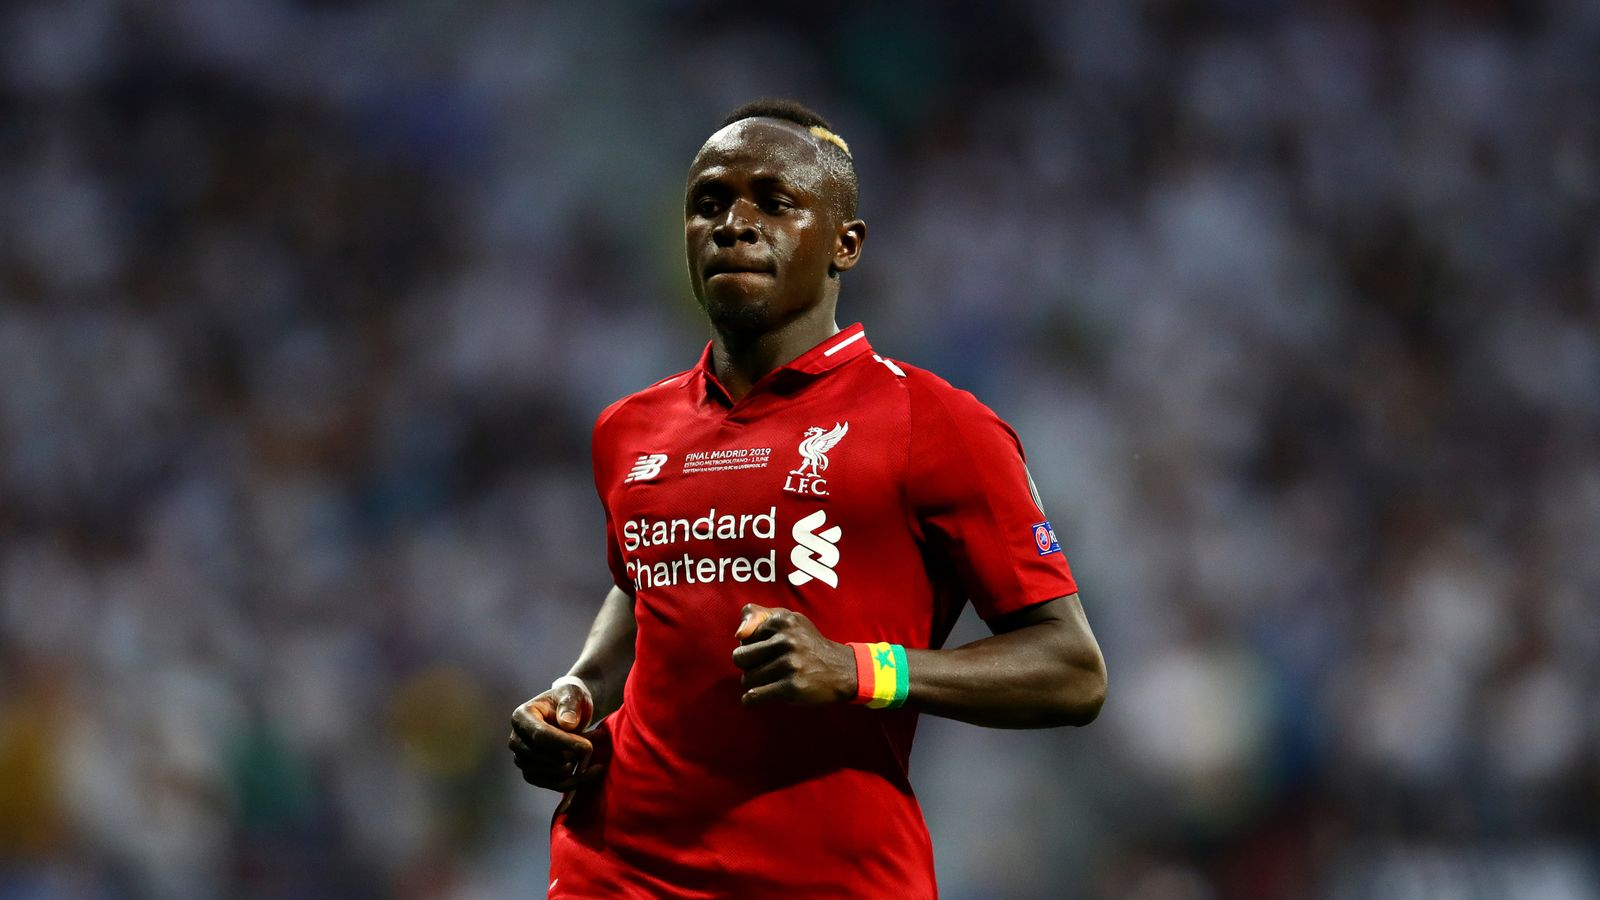 first option Liverpool after Mane Sadio  vs Norwich an for